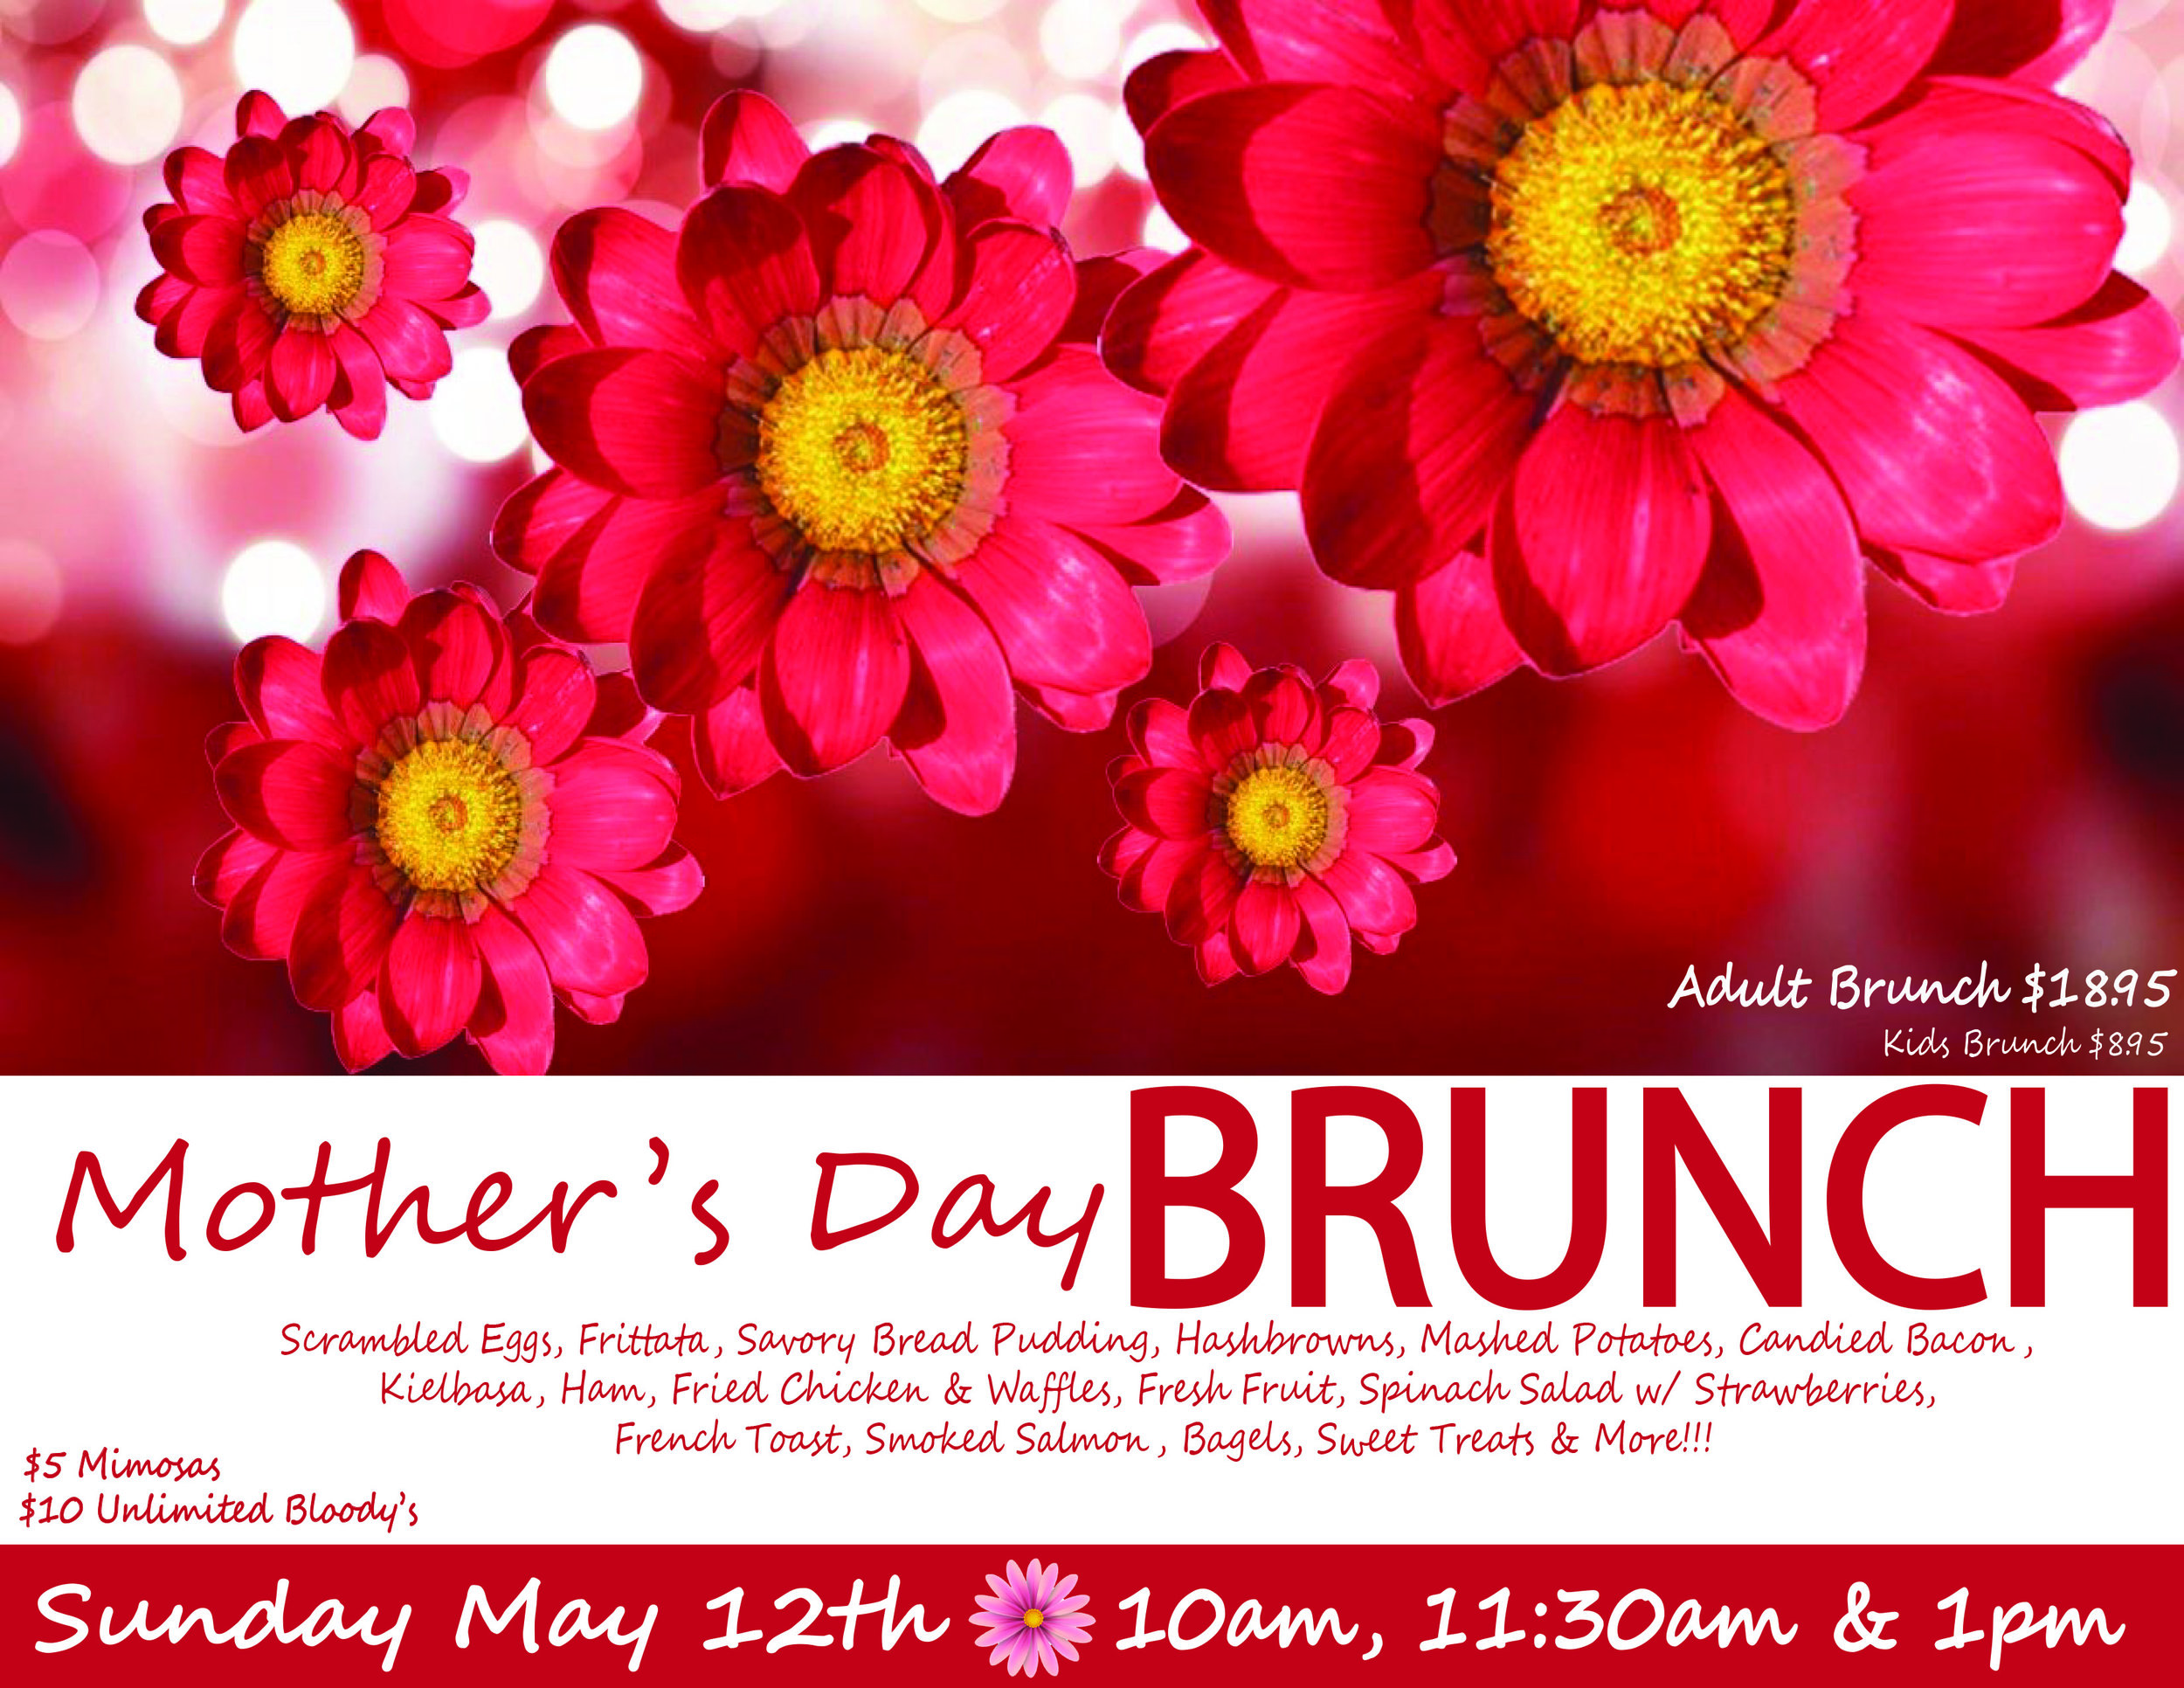 Join us for Mother's Day Brunch!!!